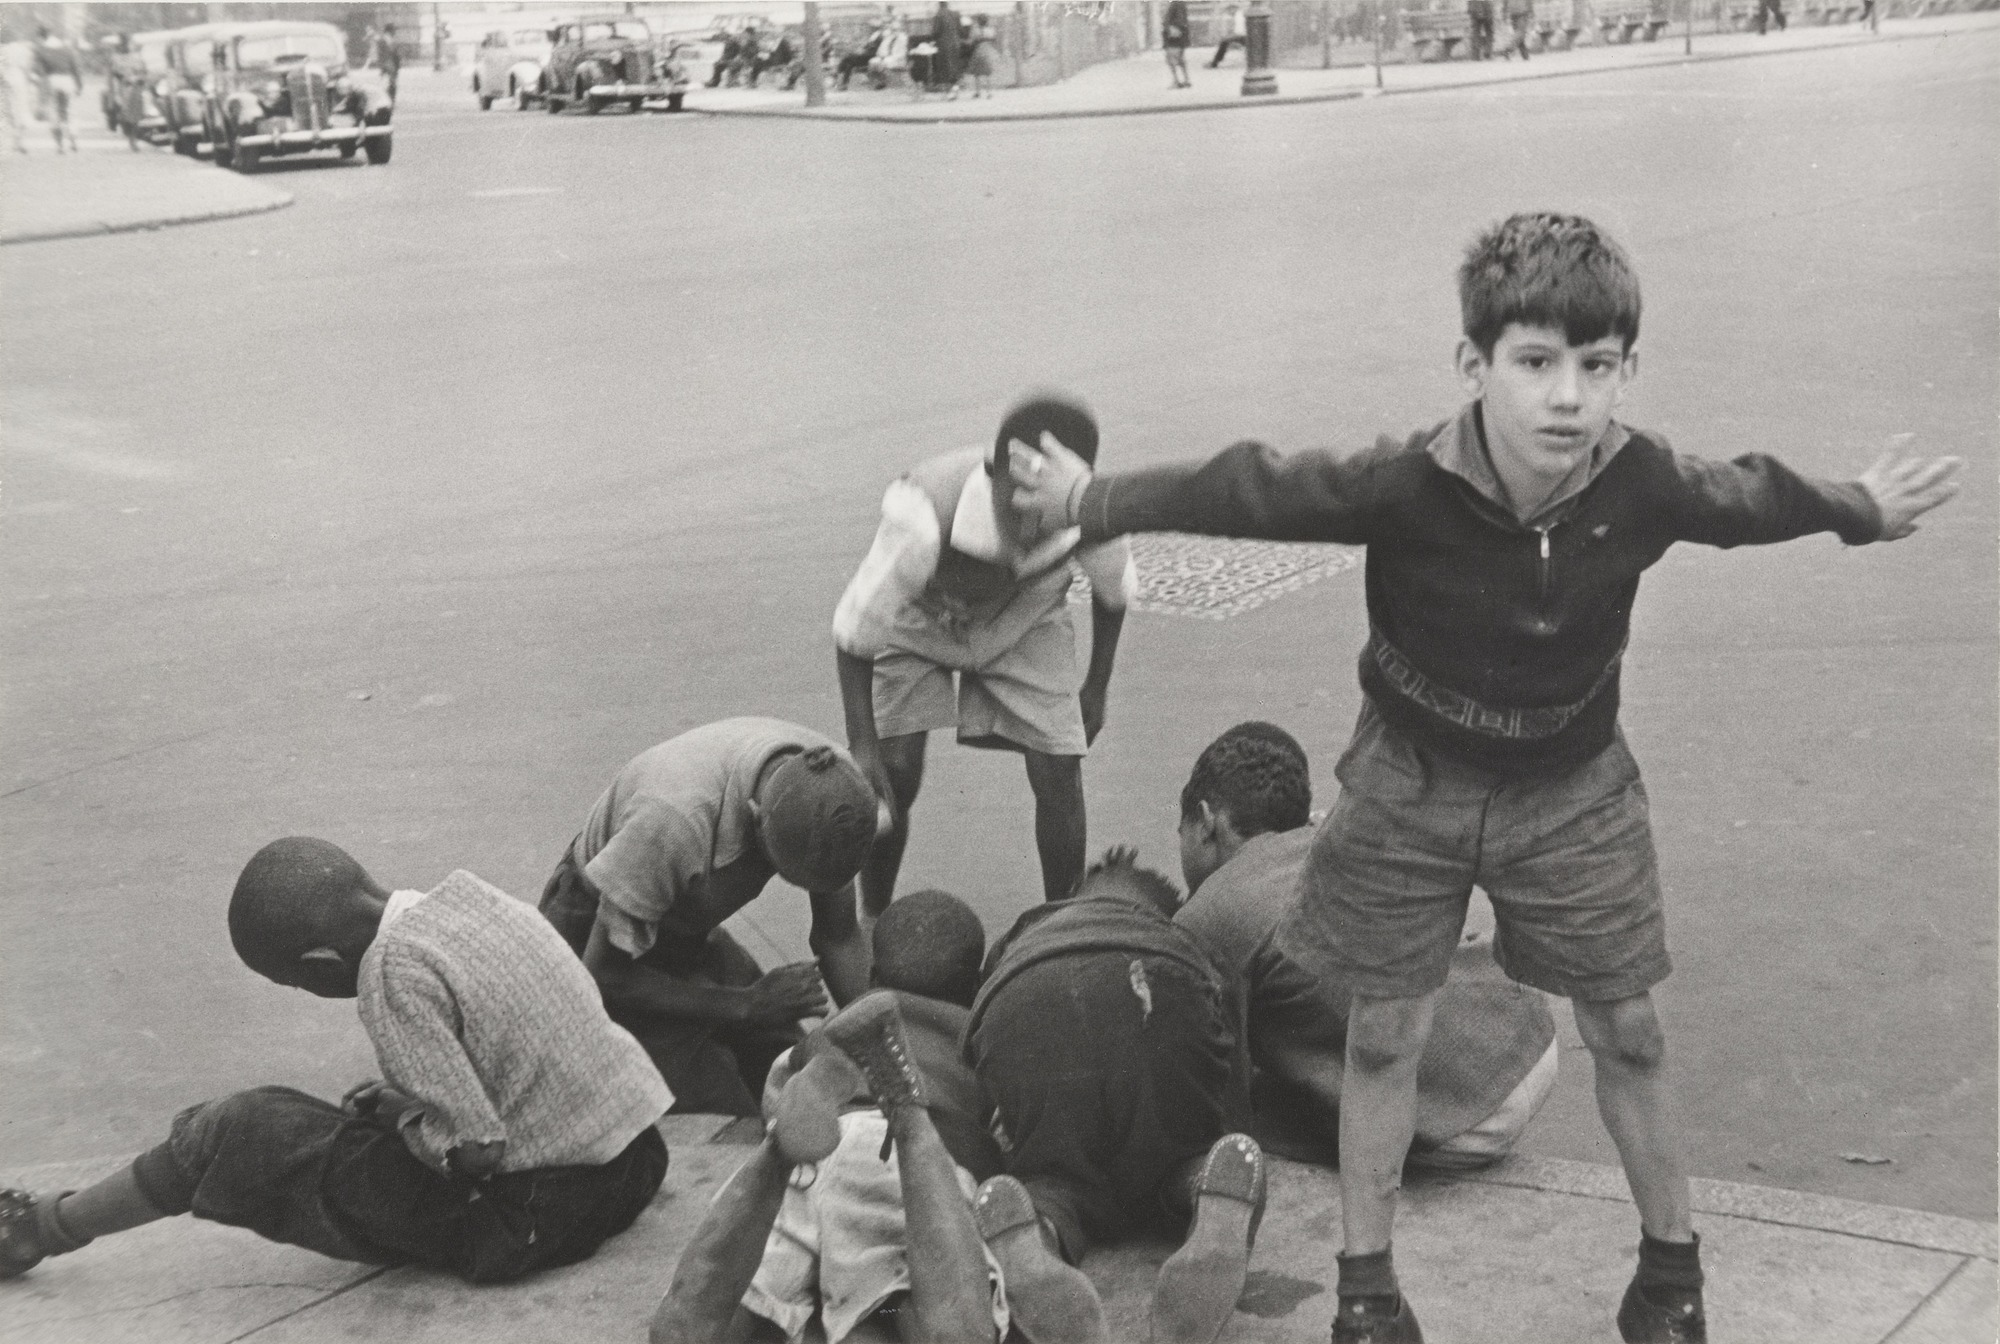 Boys playing on a street corner